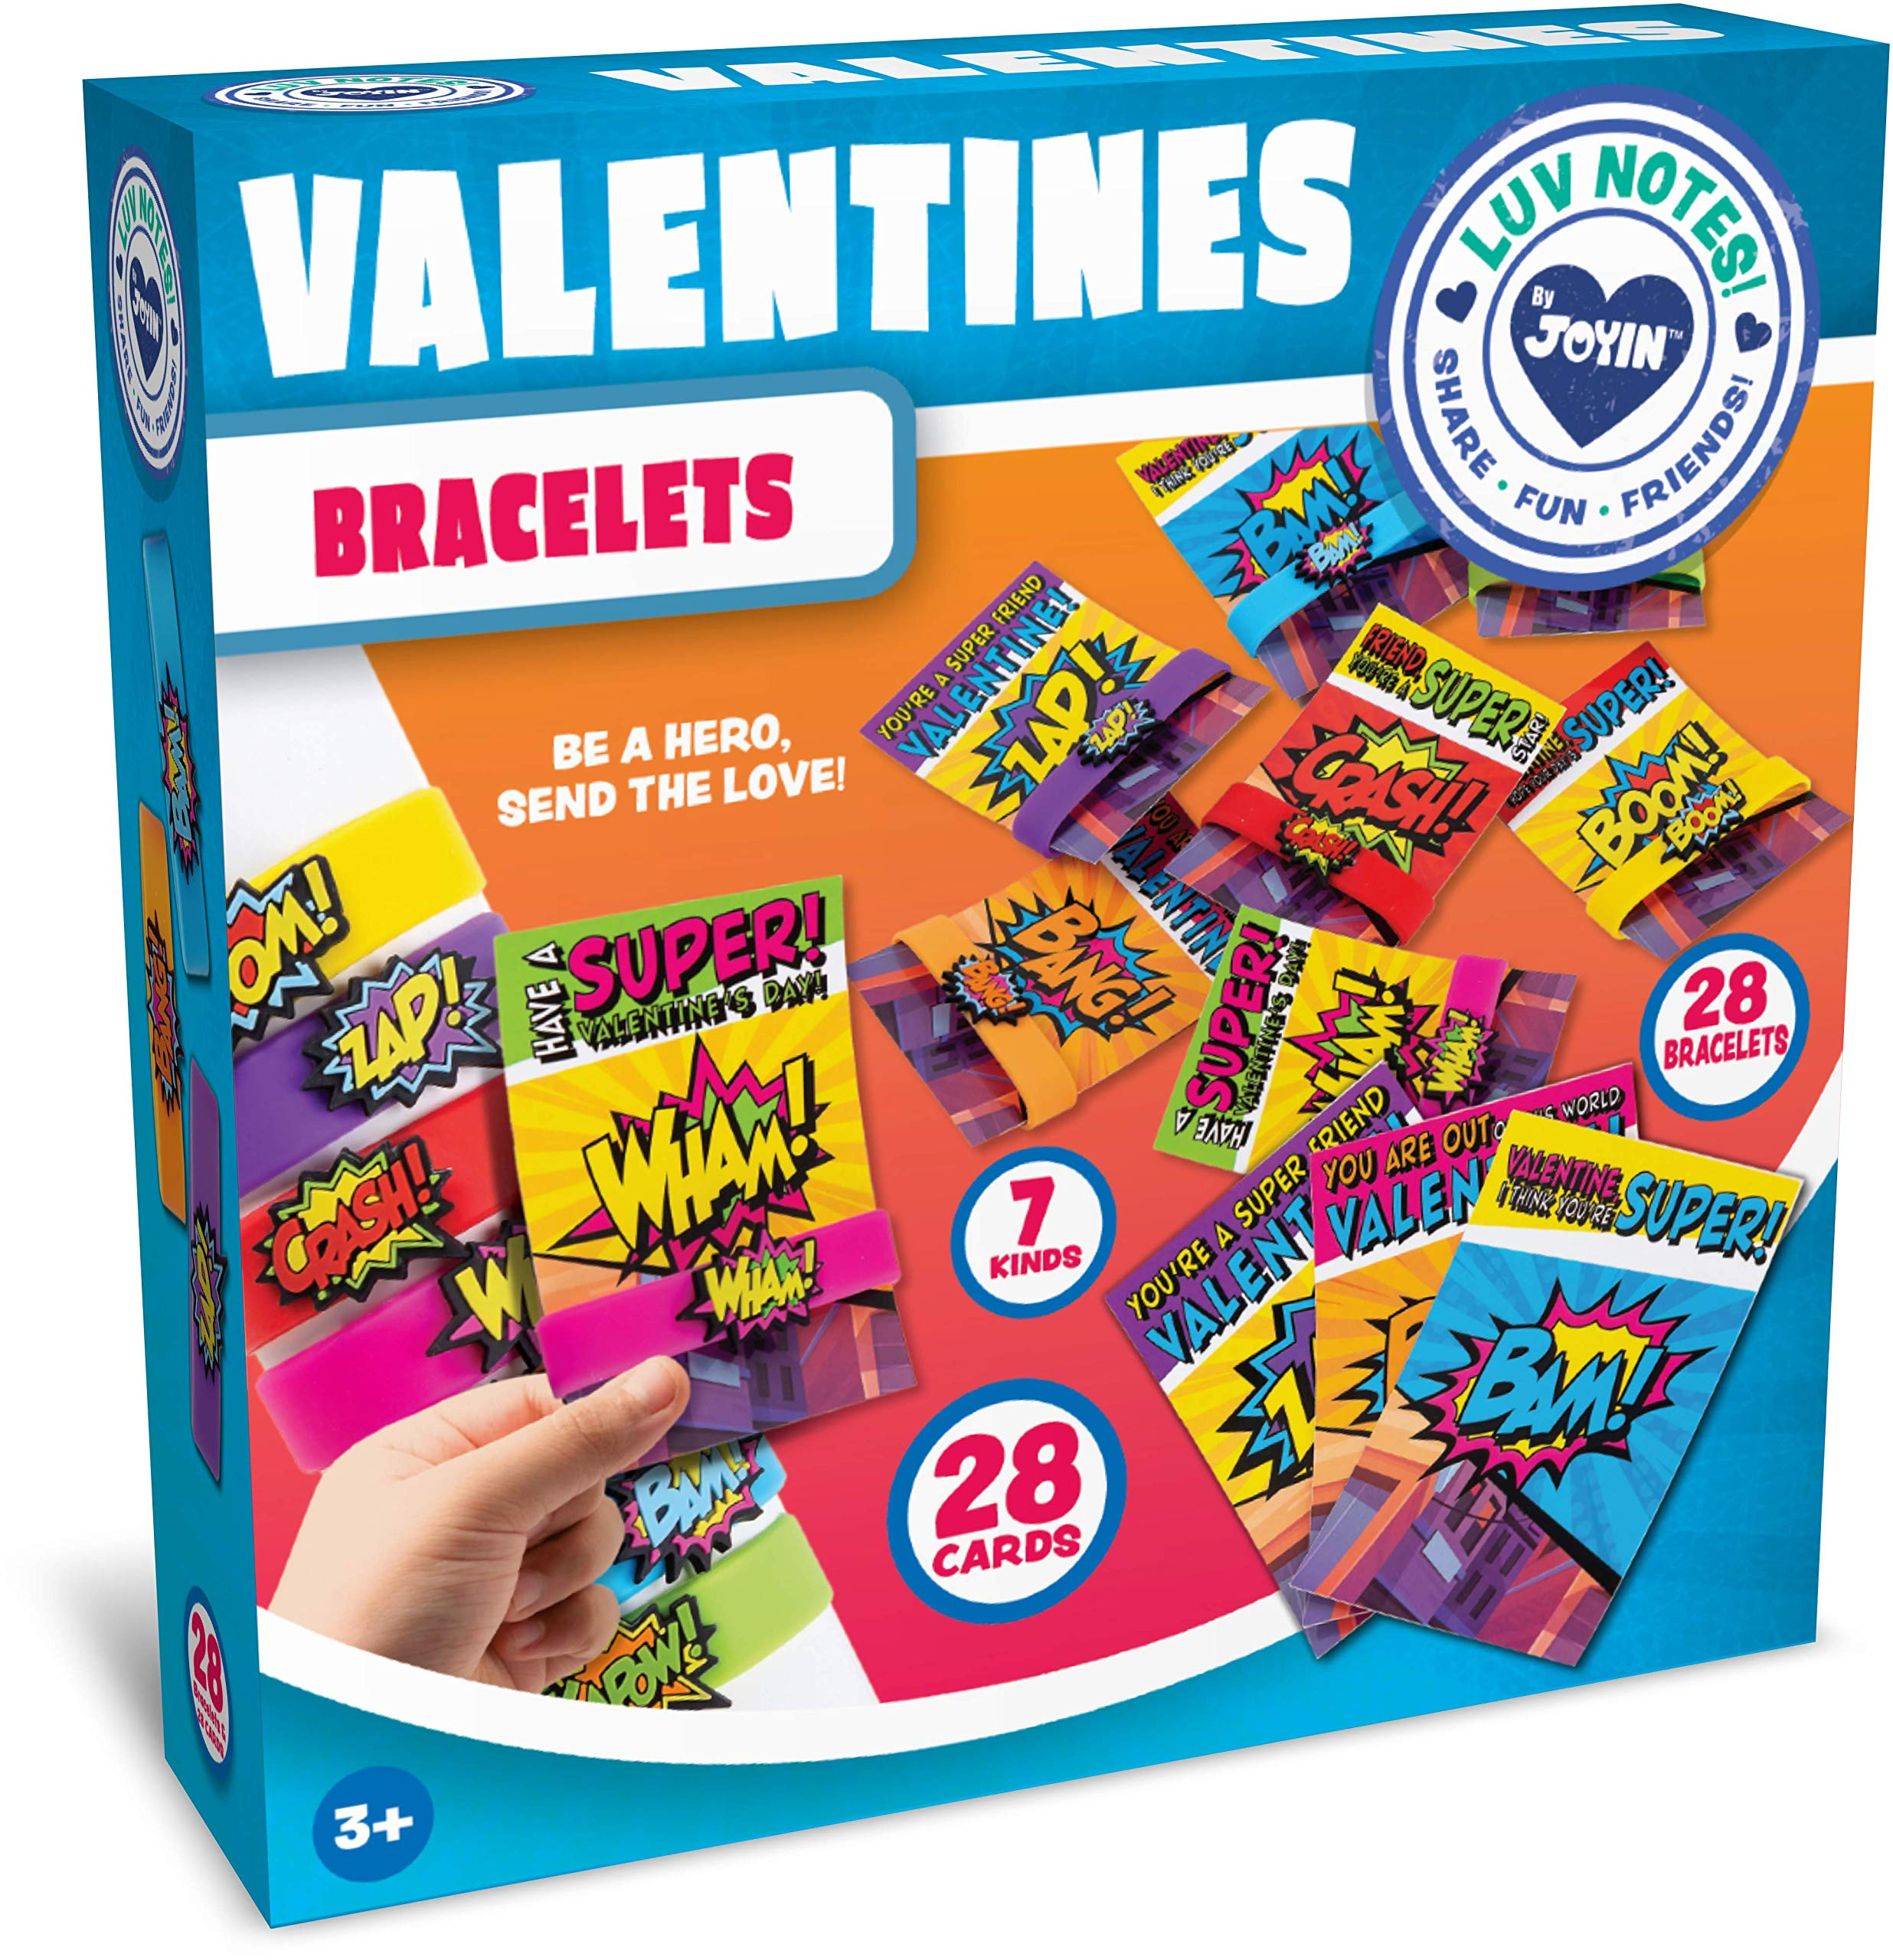 JOYIN 28 Pack Valentines Day Gift Cards With Gift Superhero Quote & Saying Rubber Slap Bracelets for Kids, Valentine's Classroom Exchange Prizes Valentine Party Favor Toys